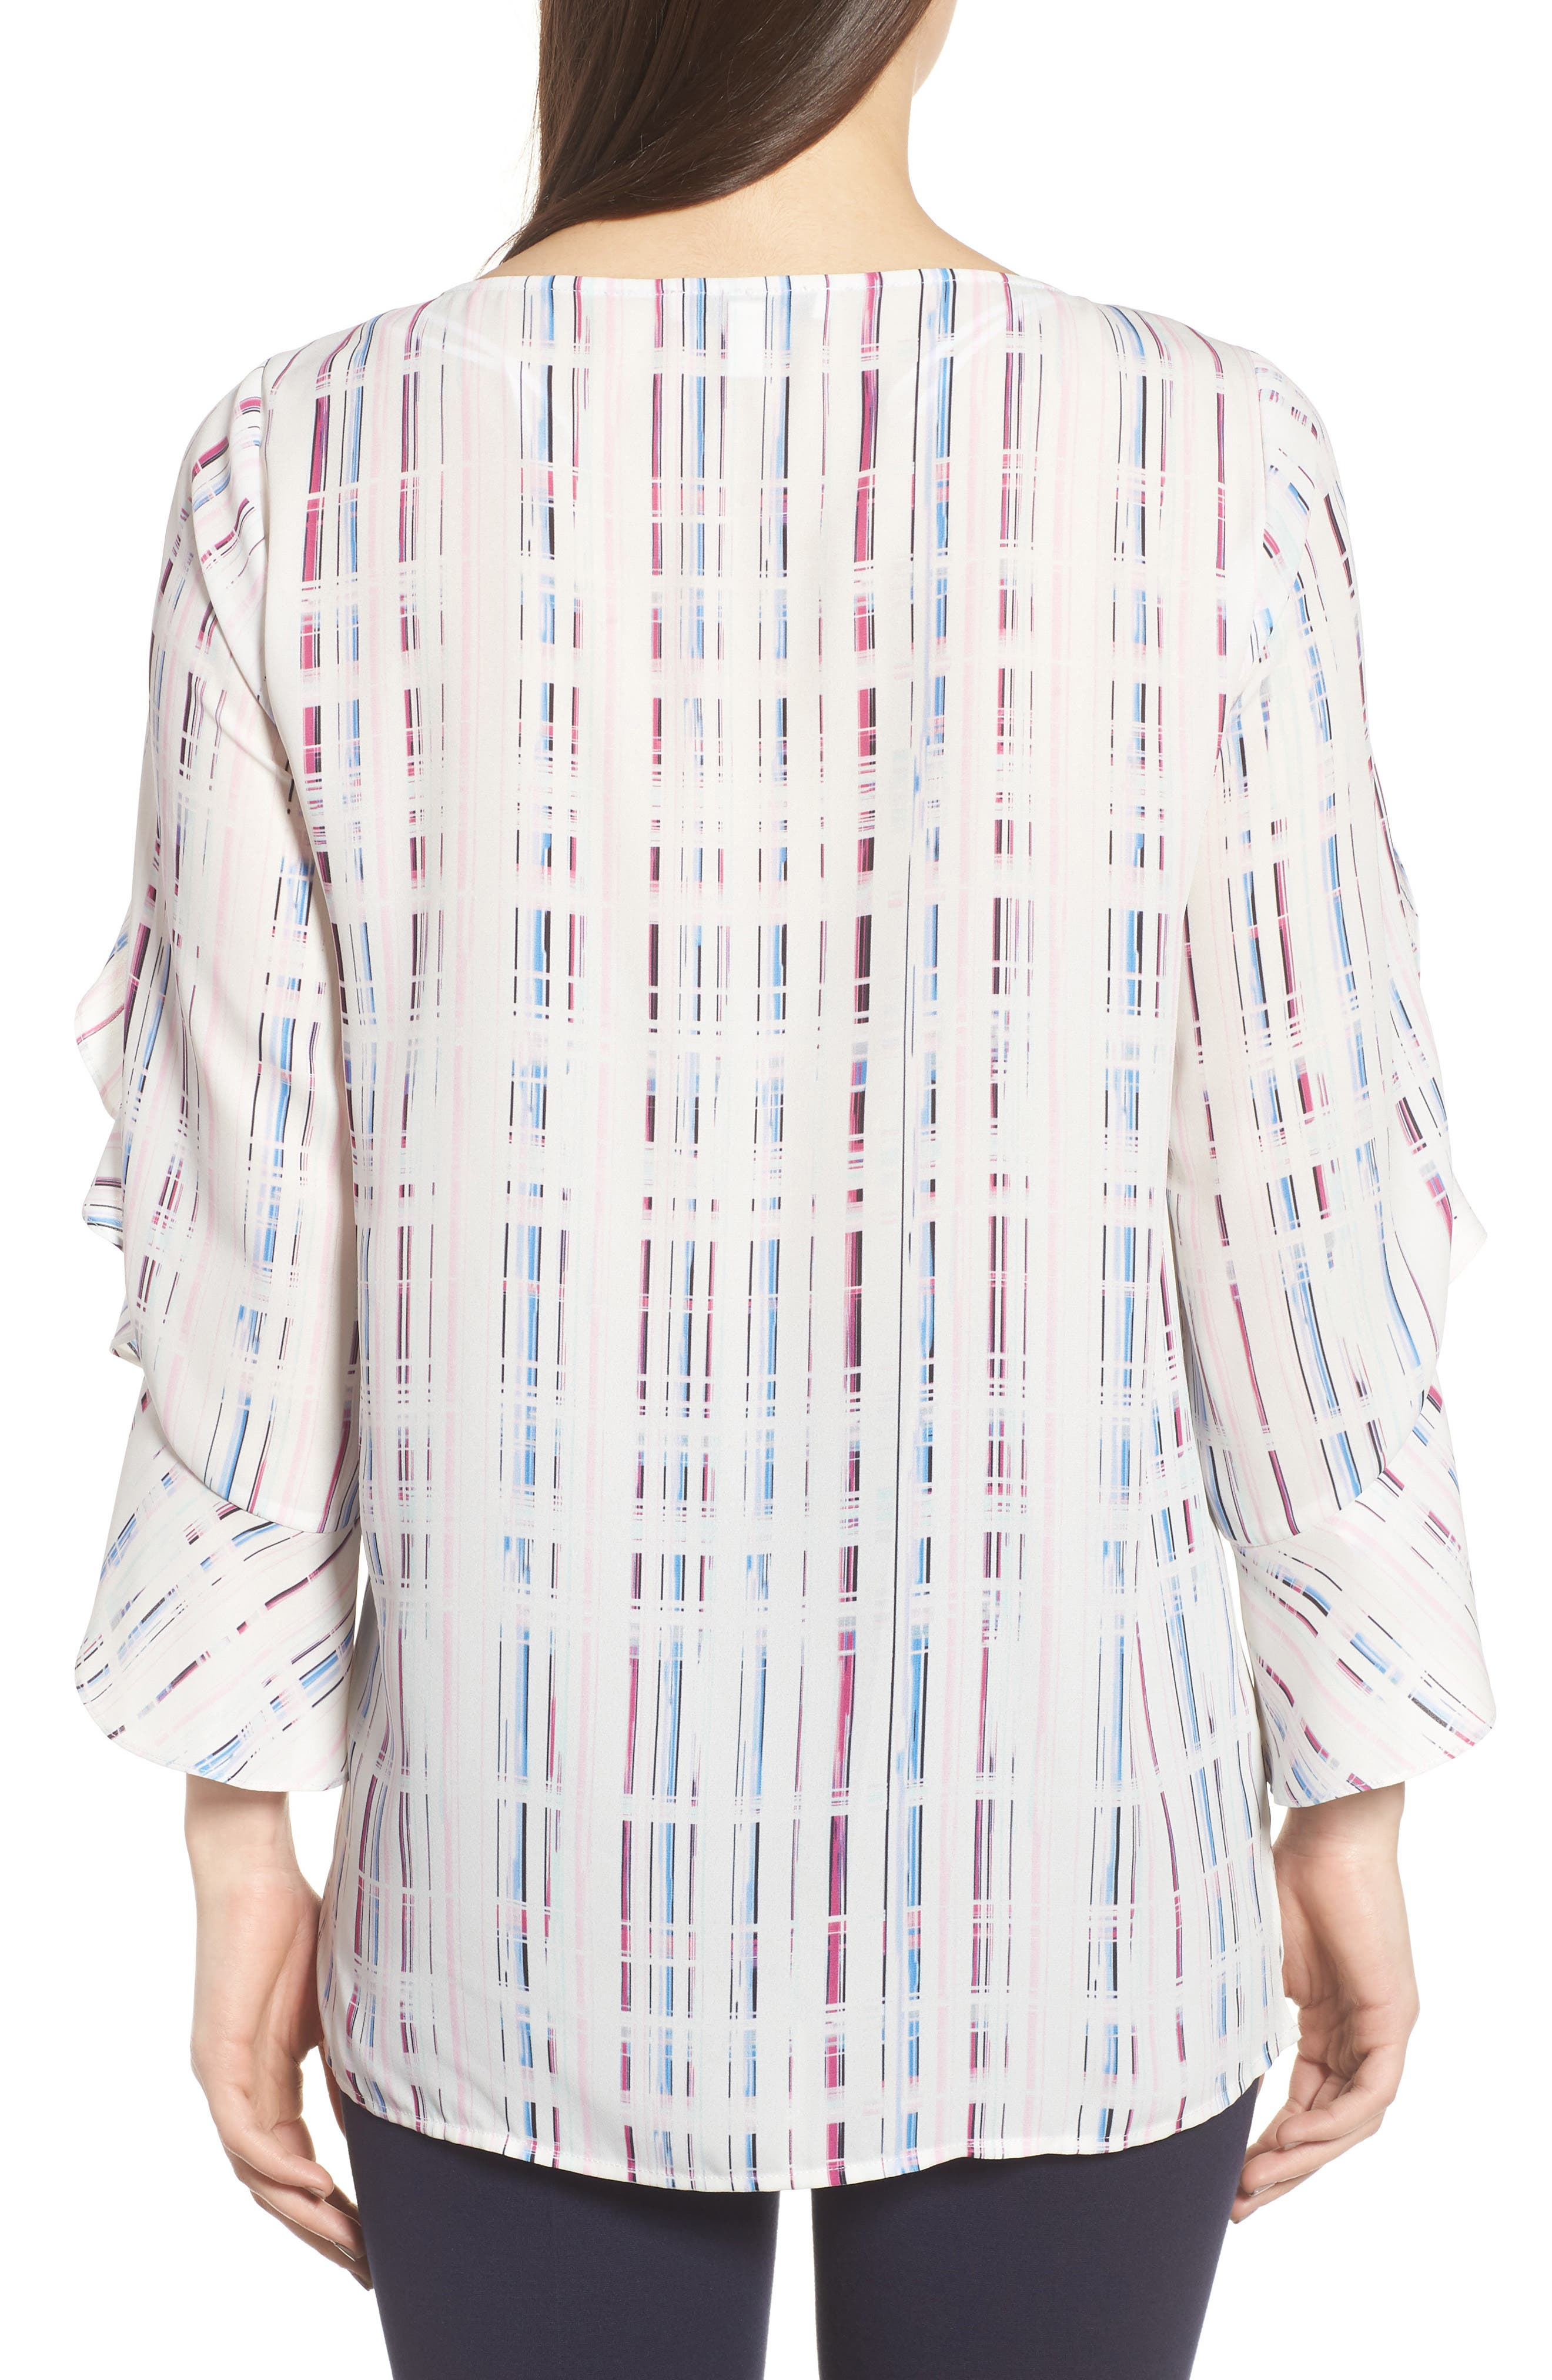 Prism Grid Print Blouse,                             Alternate thumbnail 2, color,                             103-New Ivory